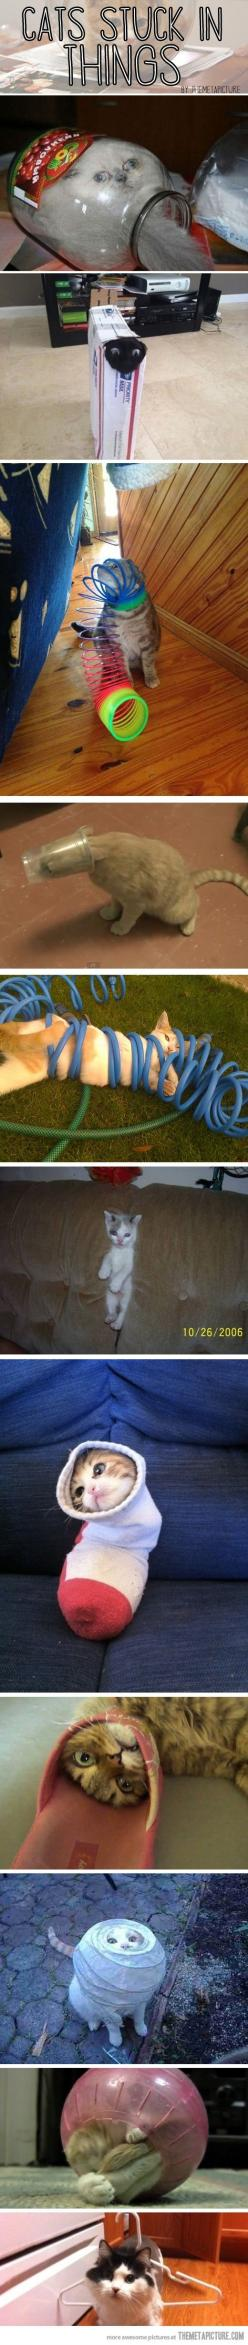 Cats stuck in things- awful, but hilarious at the same time!   ...........click here to find out more     http://googydog.com: Giggle, Kitty Cat, Cats Stuck, Silly Cats, Funny Cat, Crazy Cat, Funny Animal, Cat Lady